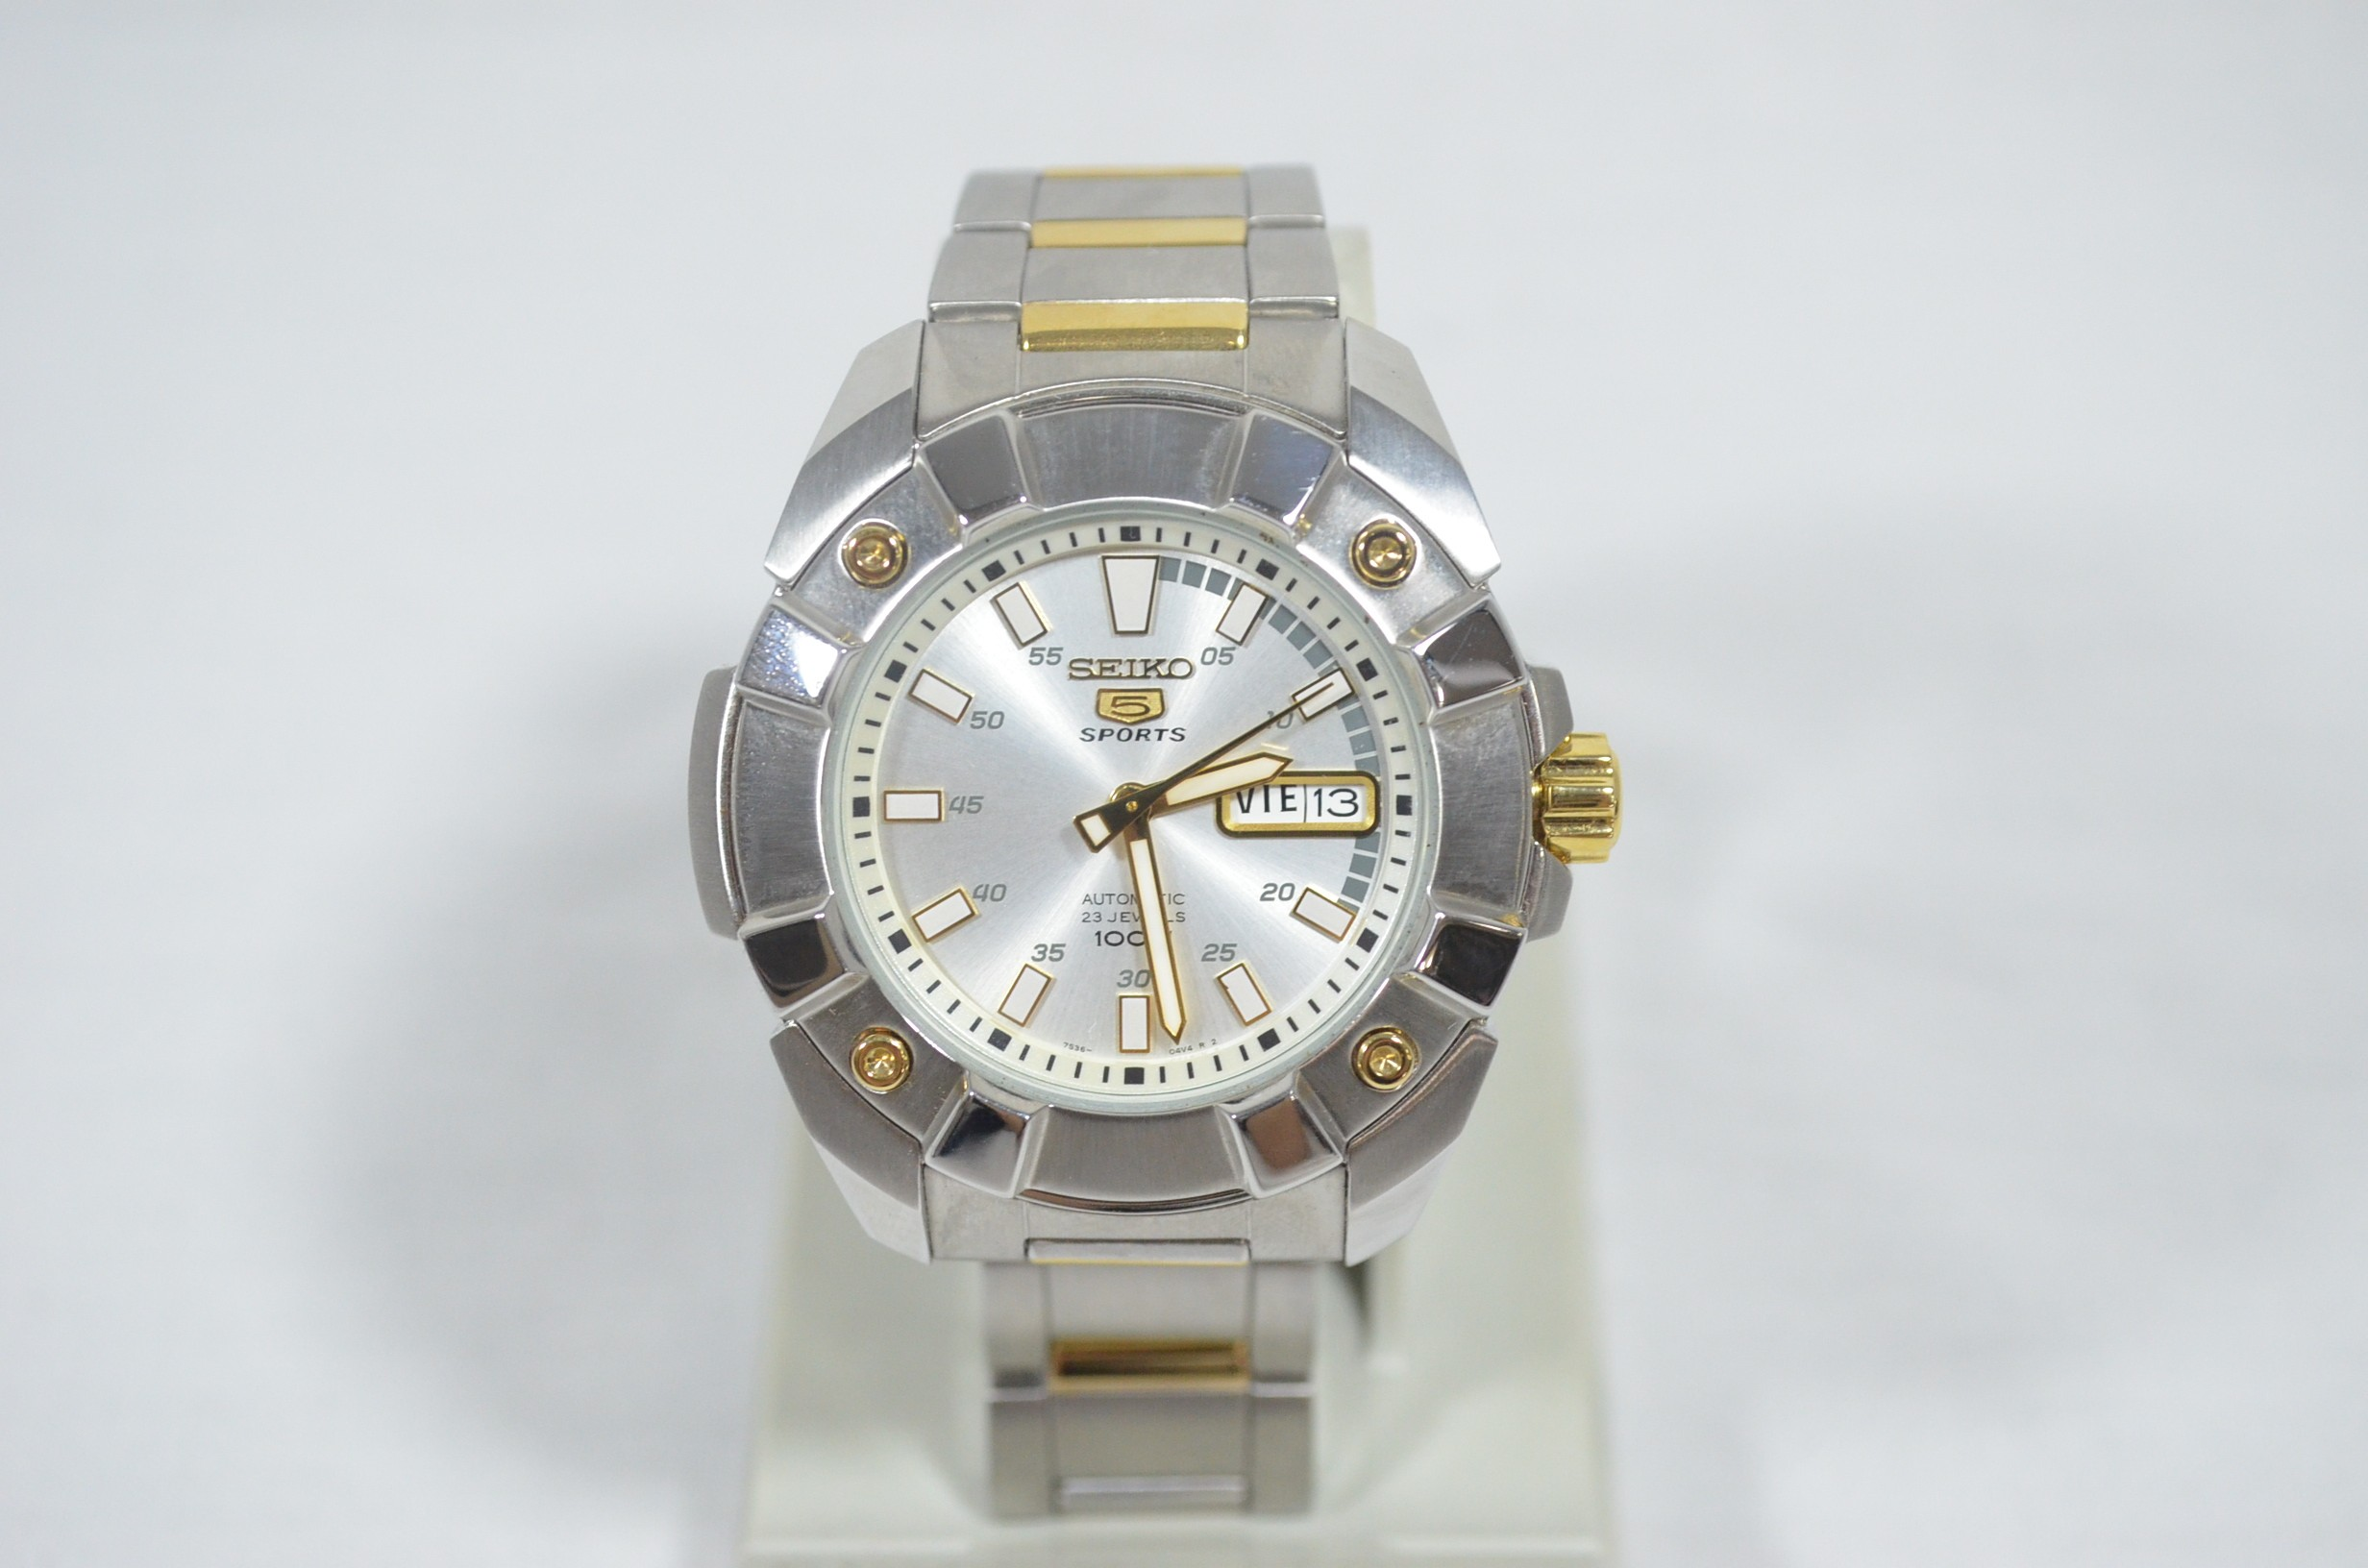 6d51140aa Seiko 5 Sports Automatic Watch Buy Online, Preloved & 100% Authentic ...